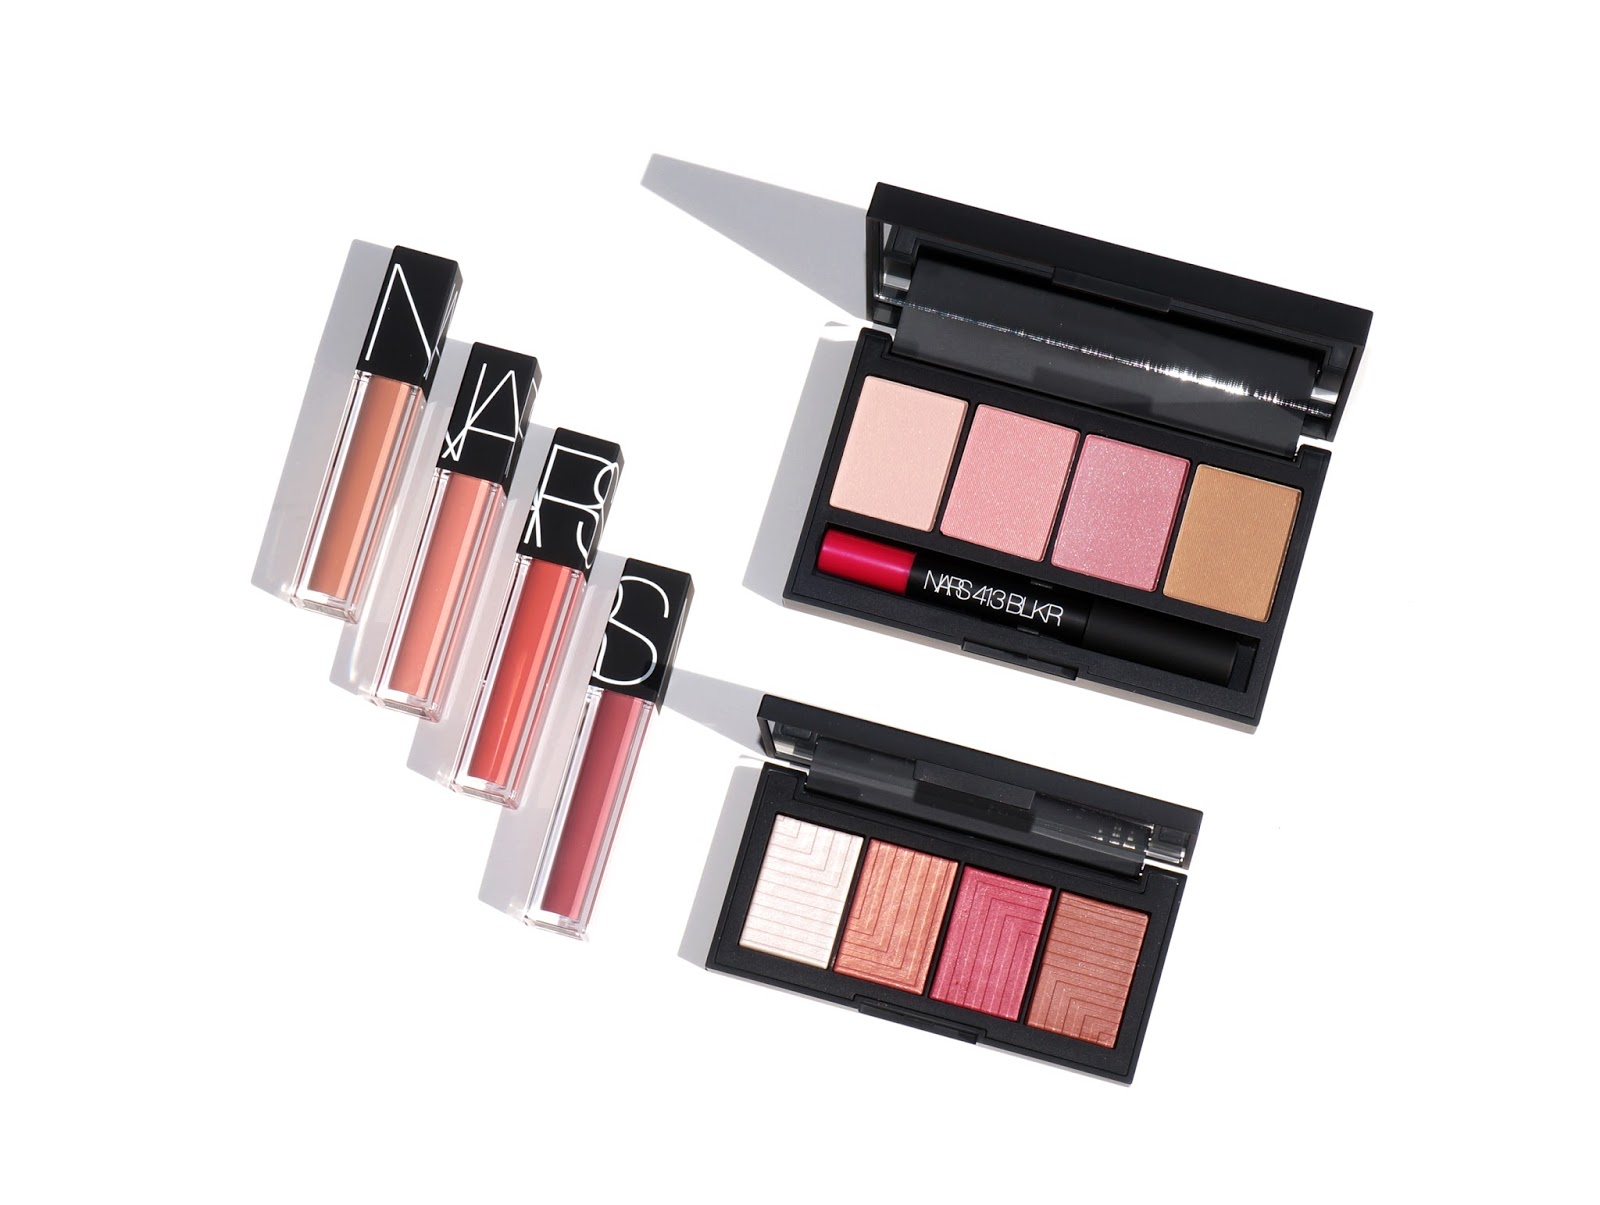 The Beauty Look Book - NARS Velvet Lip Glide, 413 BLKR Cheek and Lip Palette and NARSissist Dual-Intensity Cheek Palette